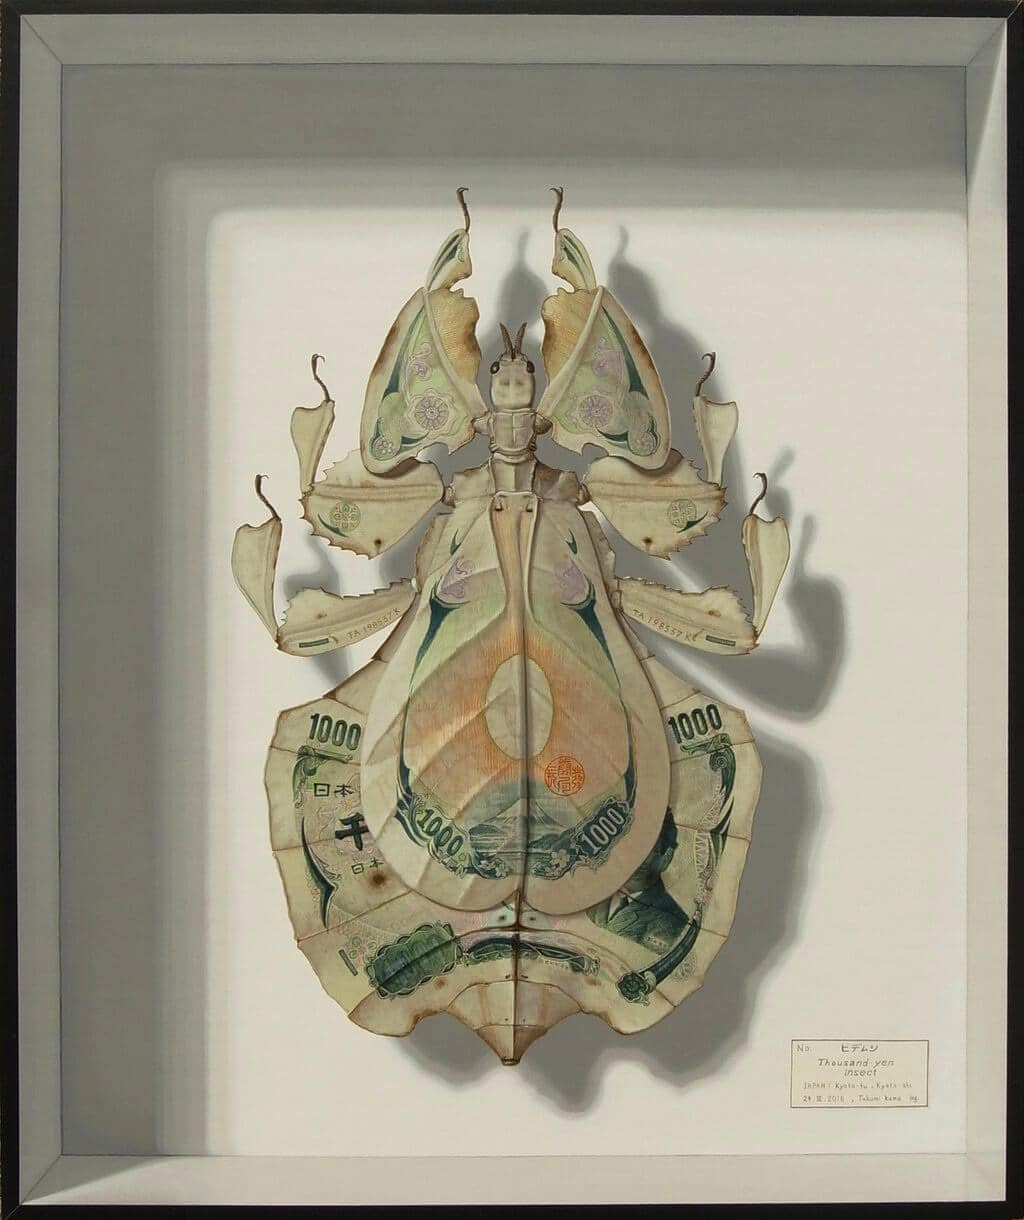 Fabulous Currency Leaf Insects by Takumi Kama -painting, insects